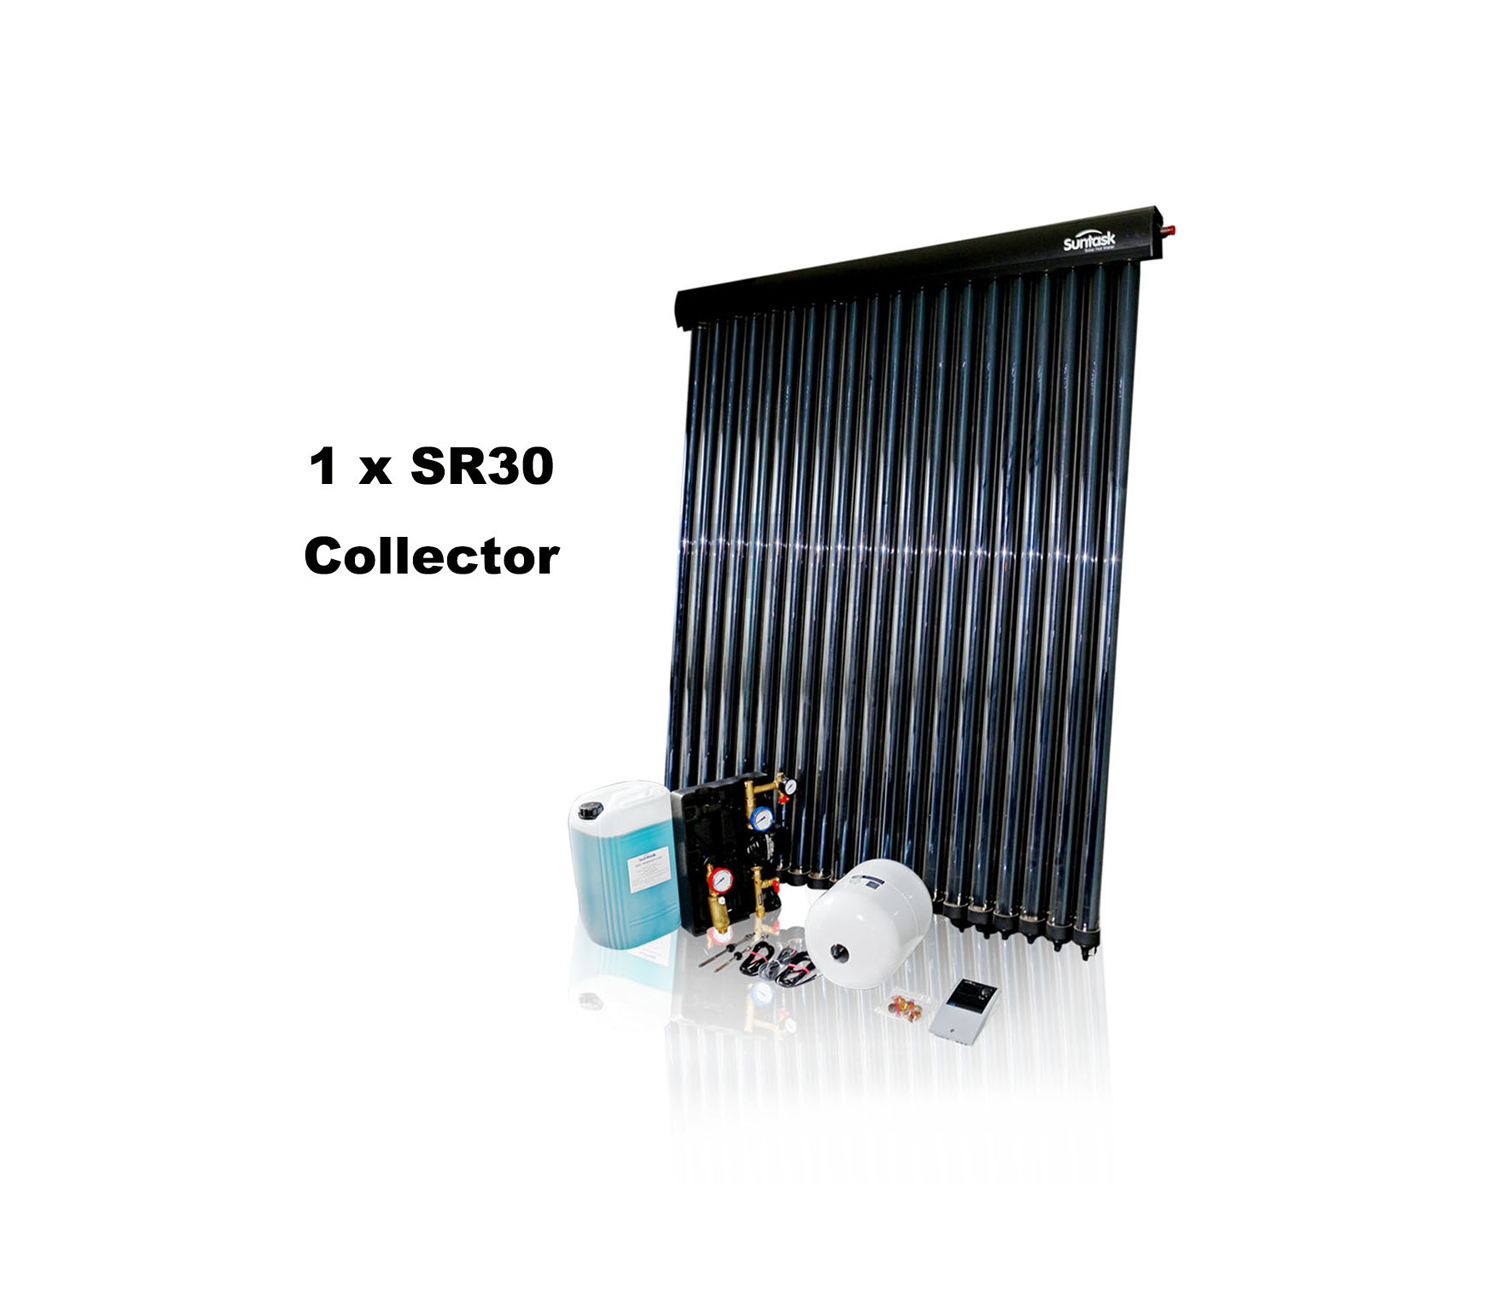 Full Solar Thermal Kits excluding Cylinders 30 Tube System, Solar Thermal kits for sale (1 x SR30 Collector)